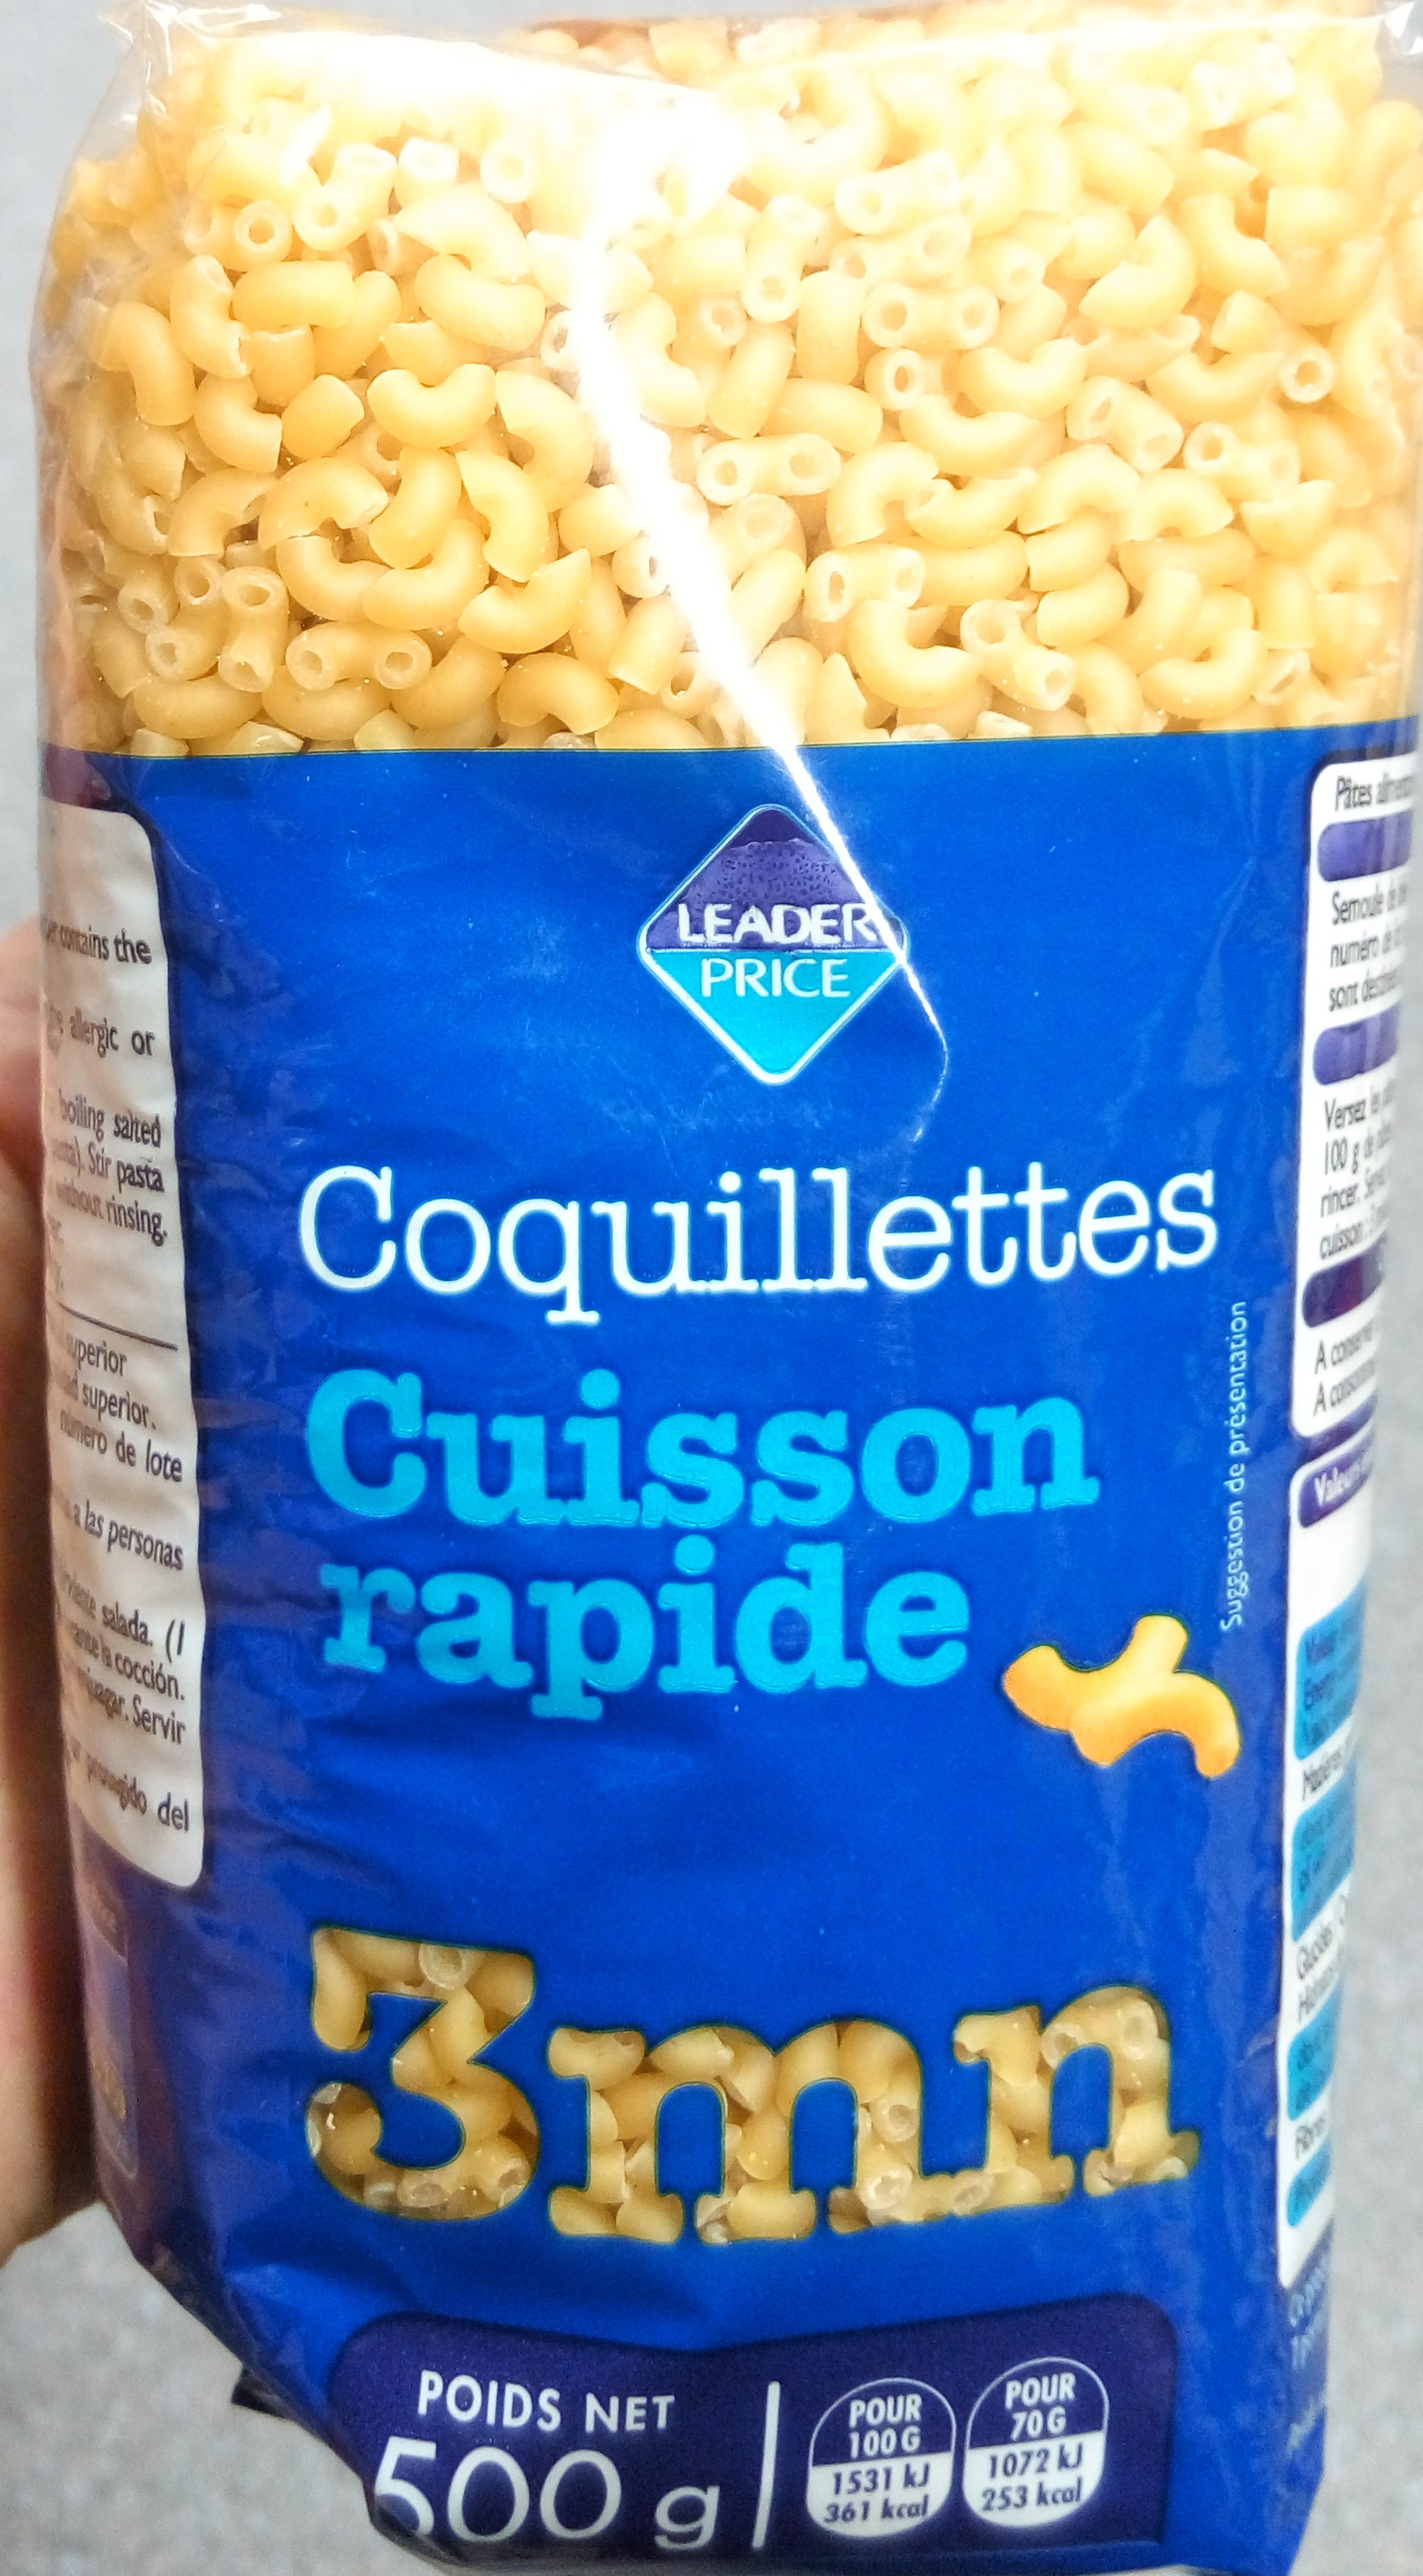 Coquillettes cuisson rapide 3 mn - Product - fr